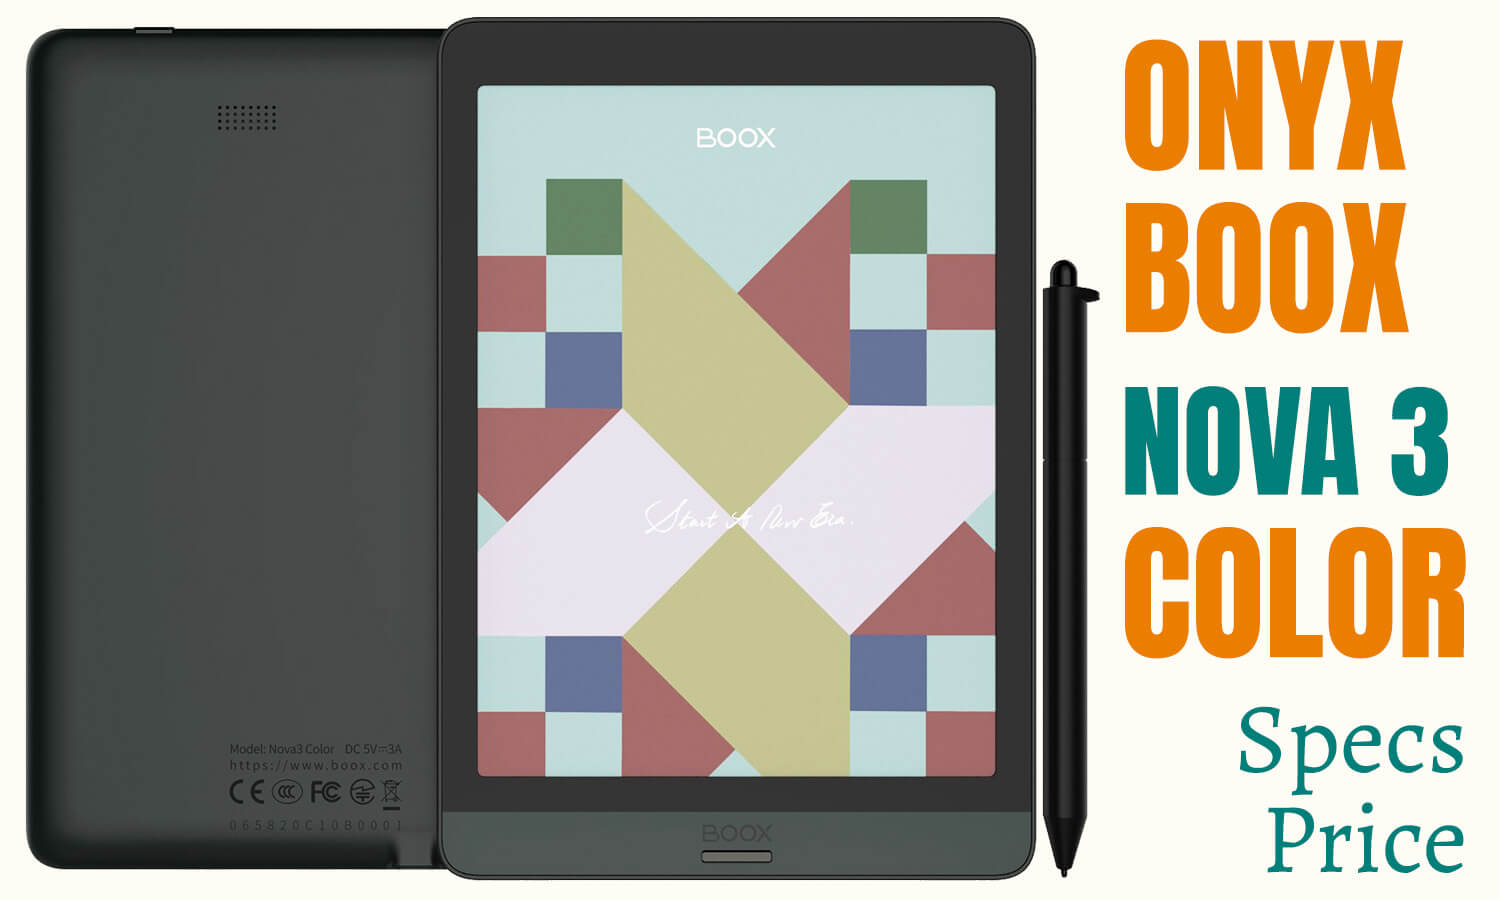 Onyx Boox nova3 color- specs, price, features